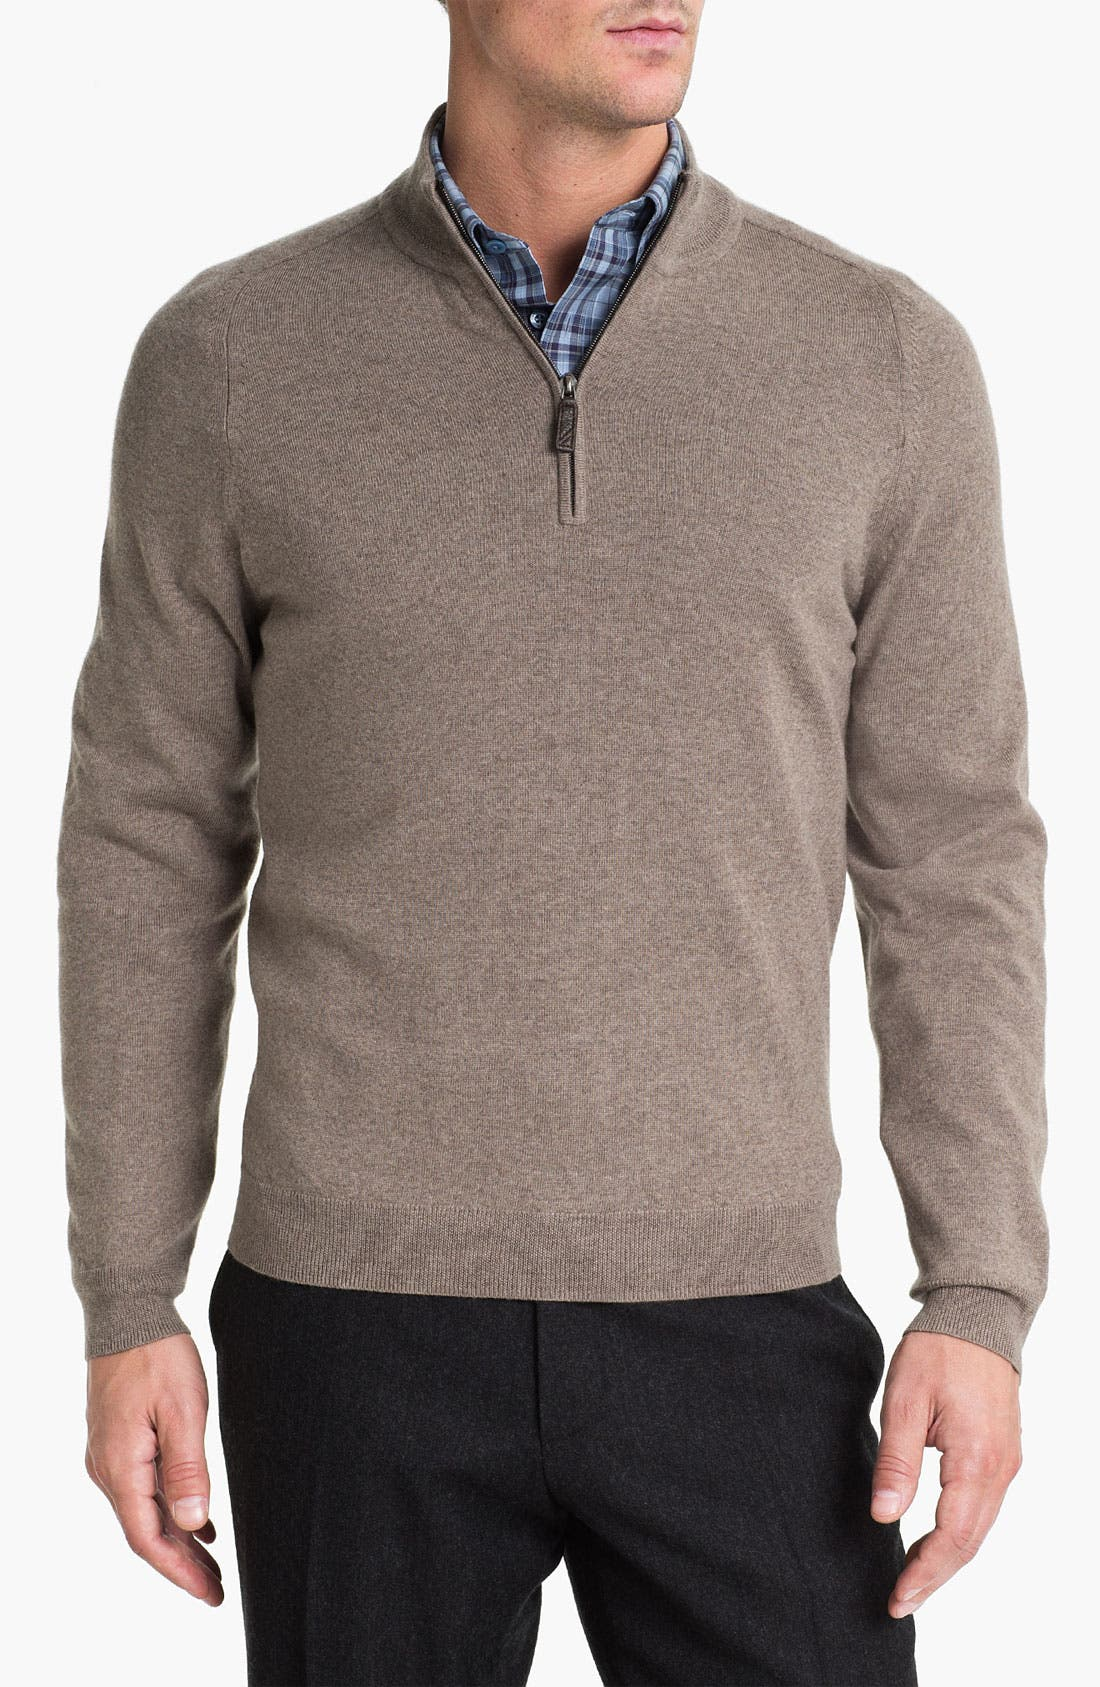 Main Image - Nordstrom Merino Wool Half Zip Sweater